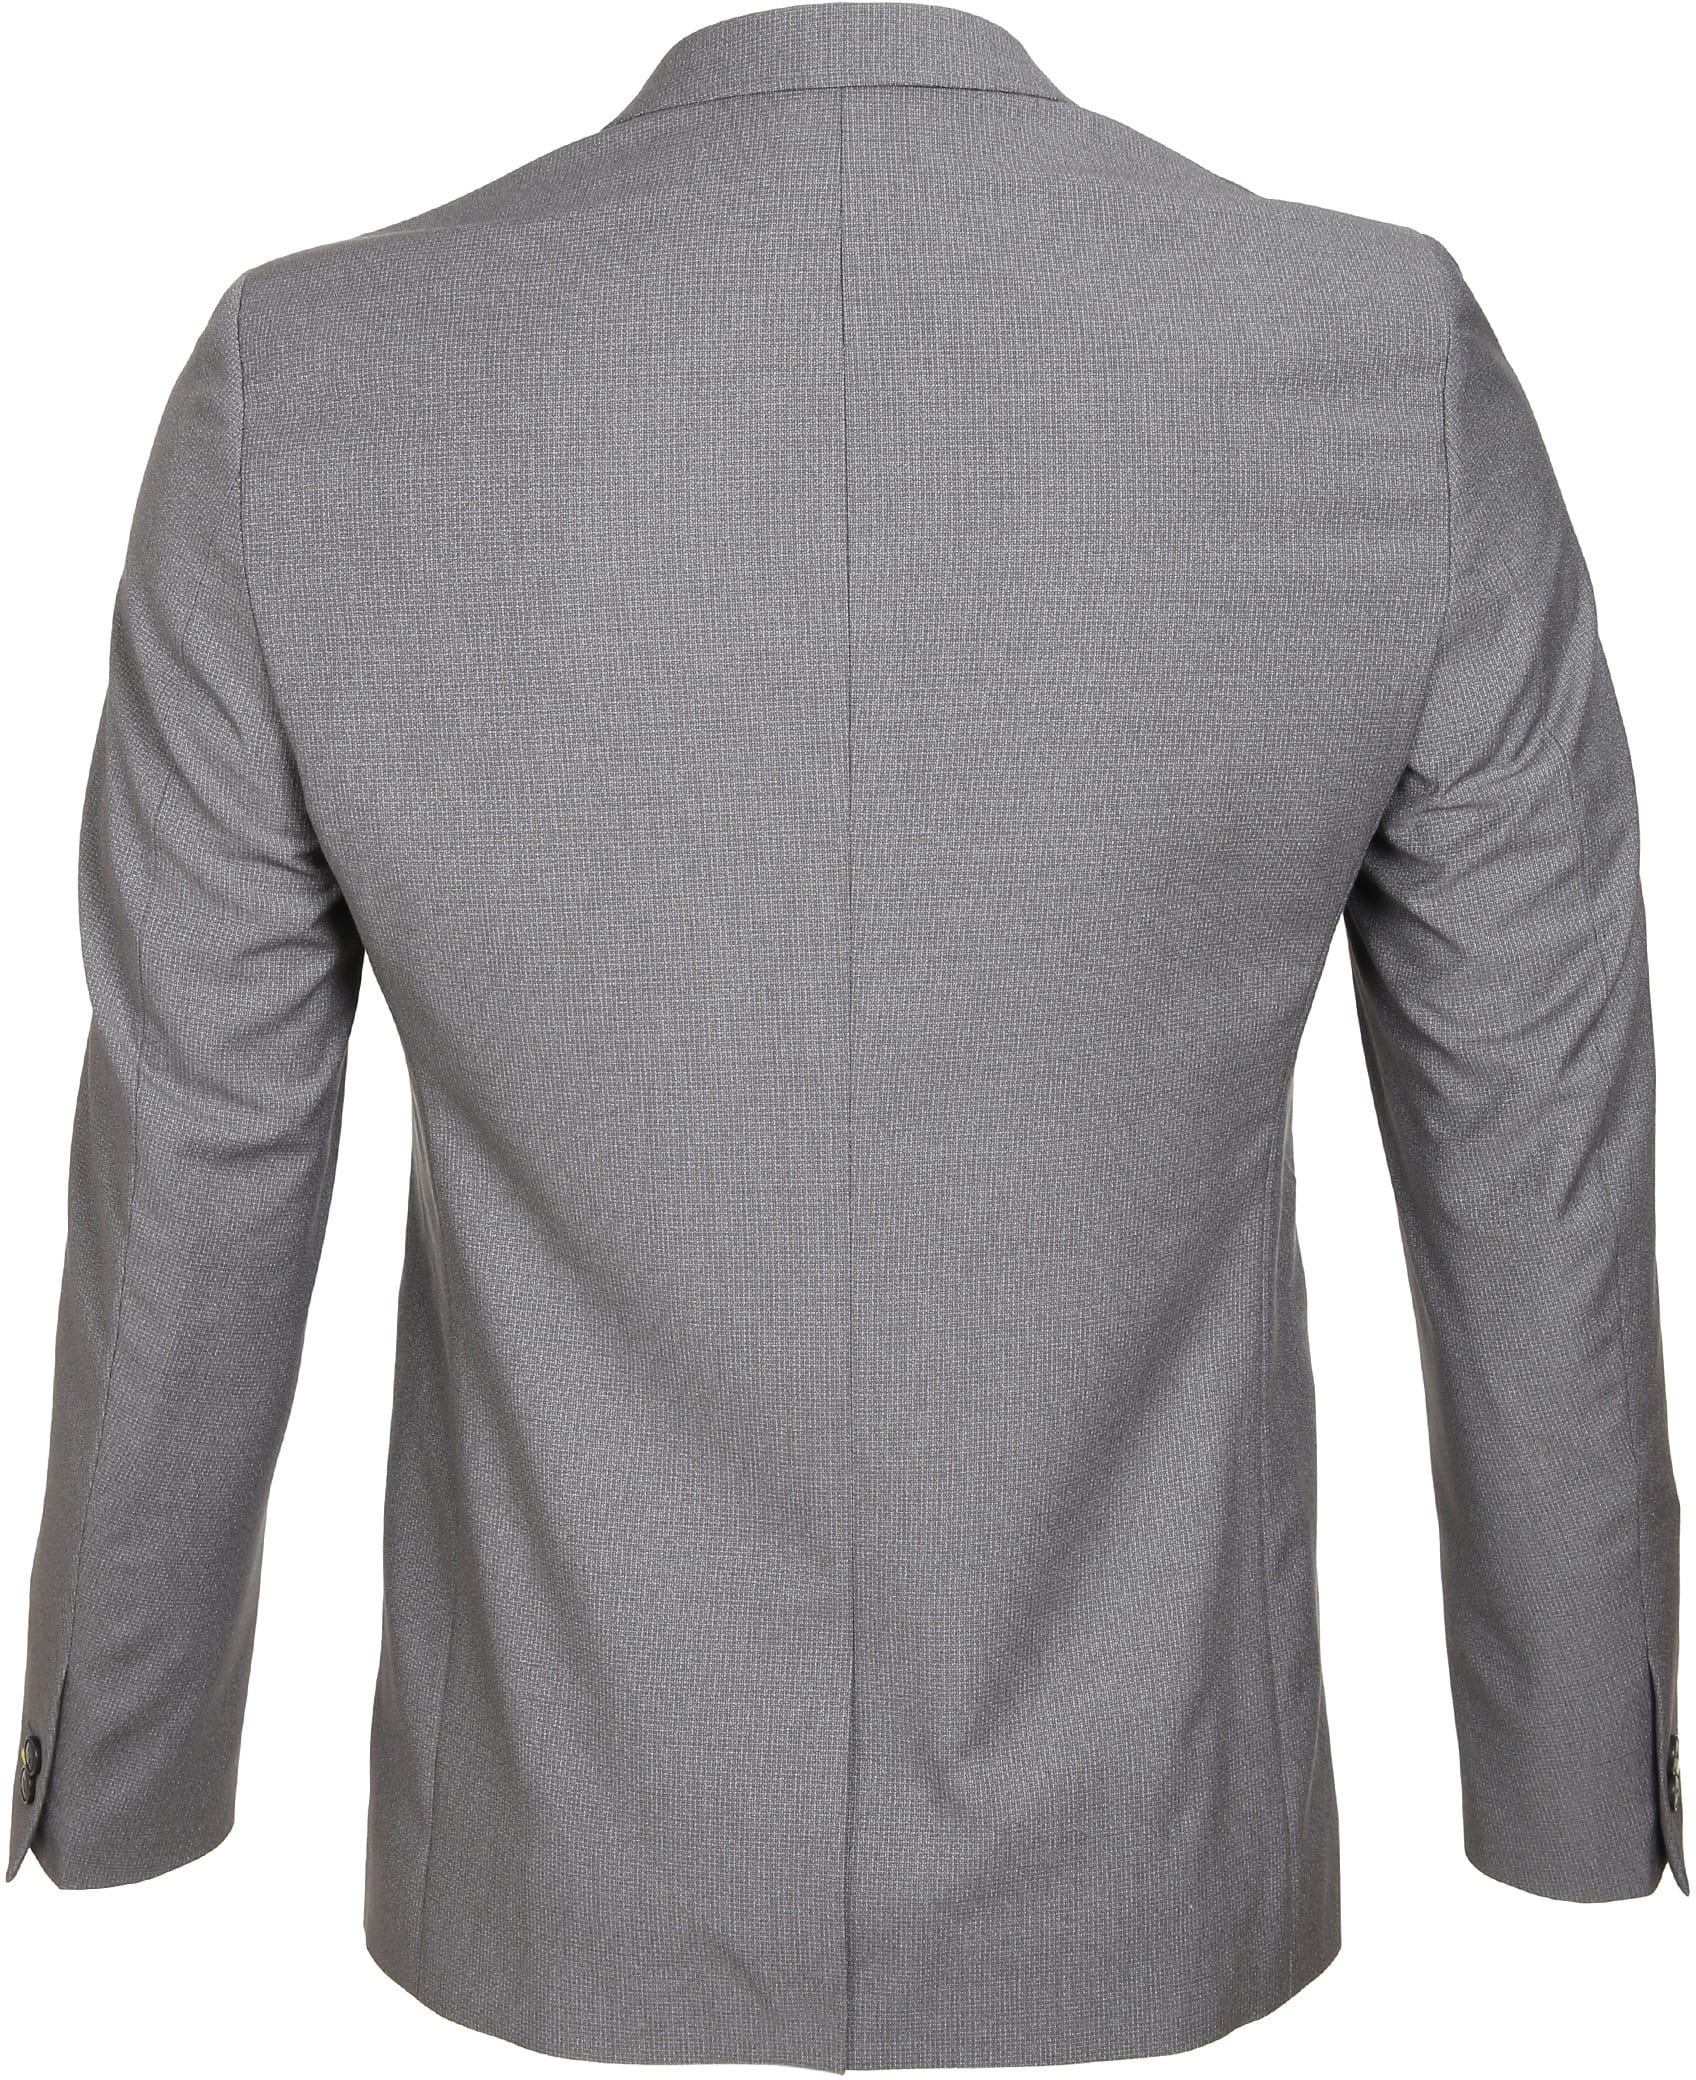 Suitable Sneaker Suit Grey foto 3